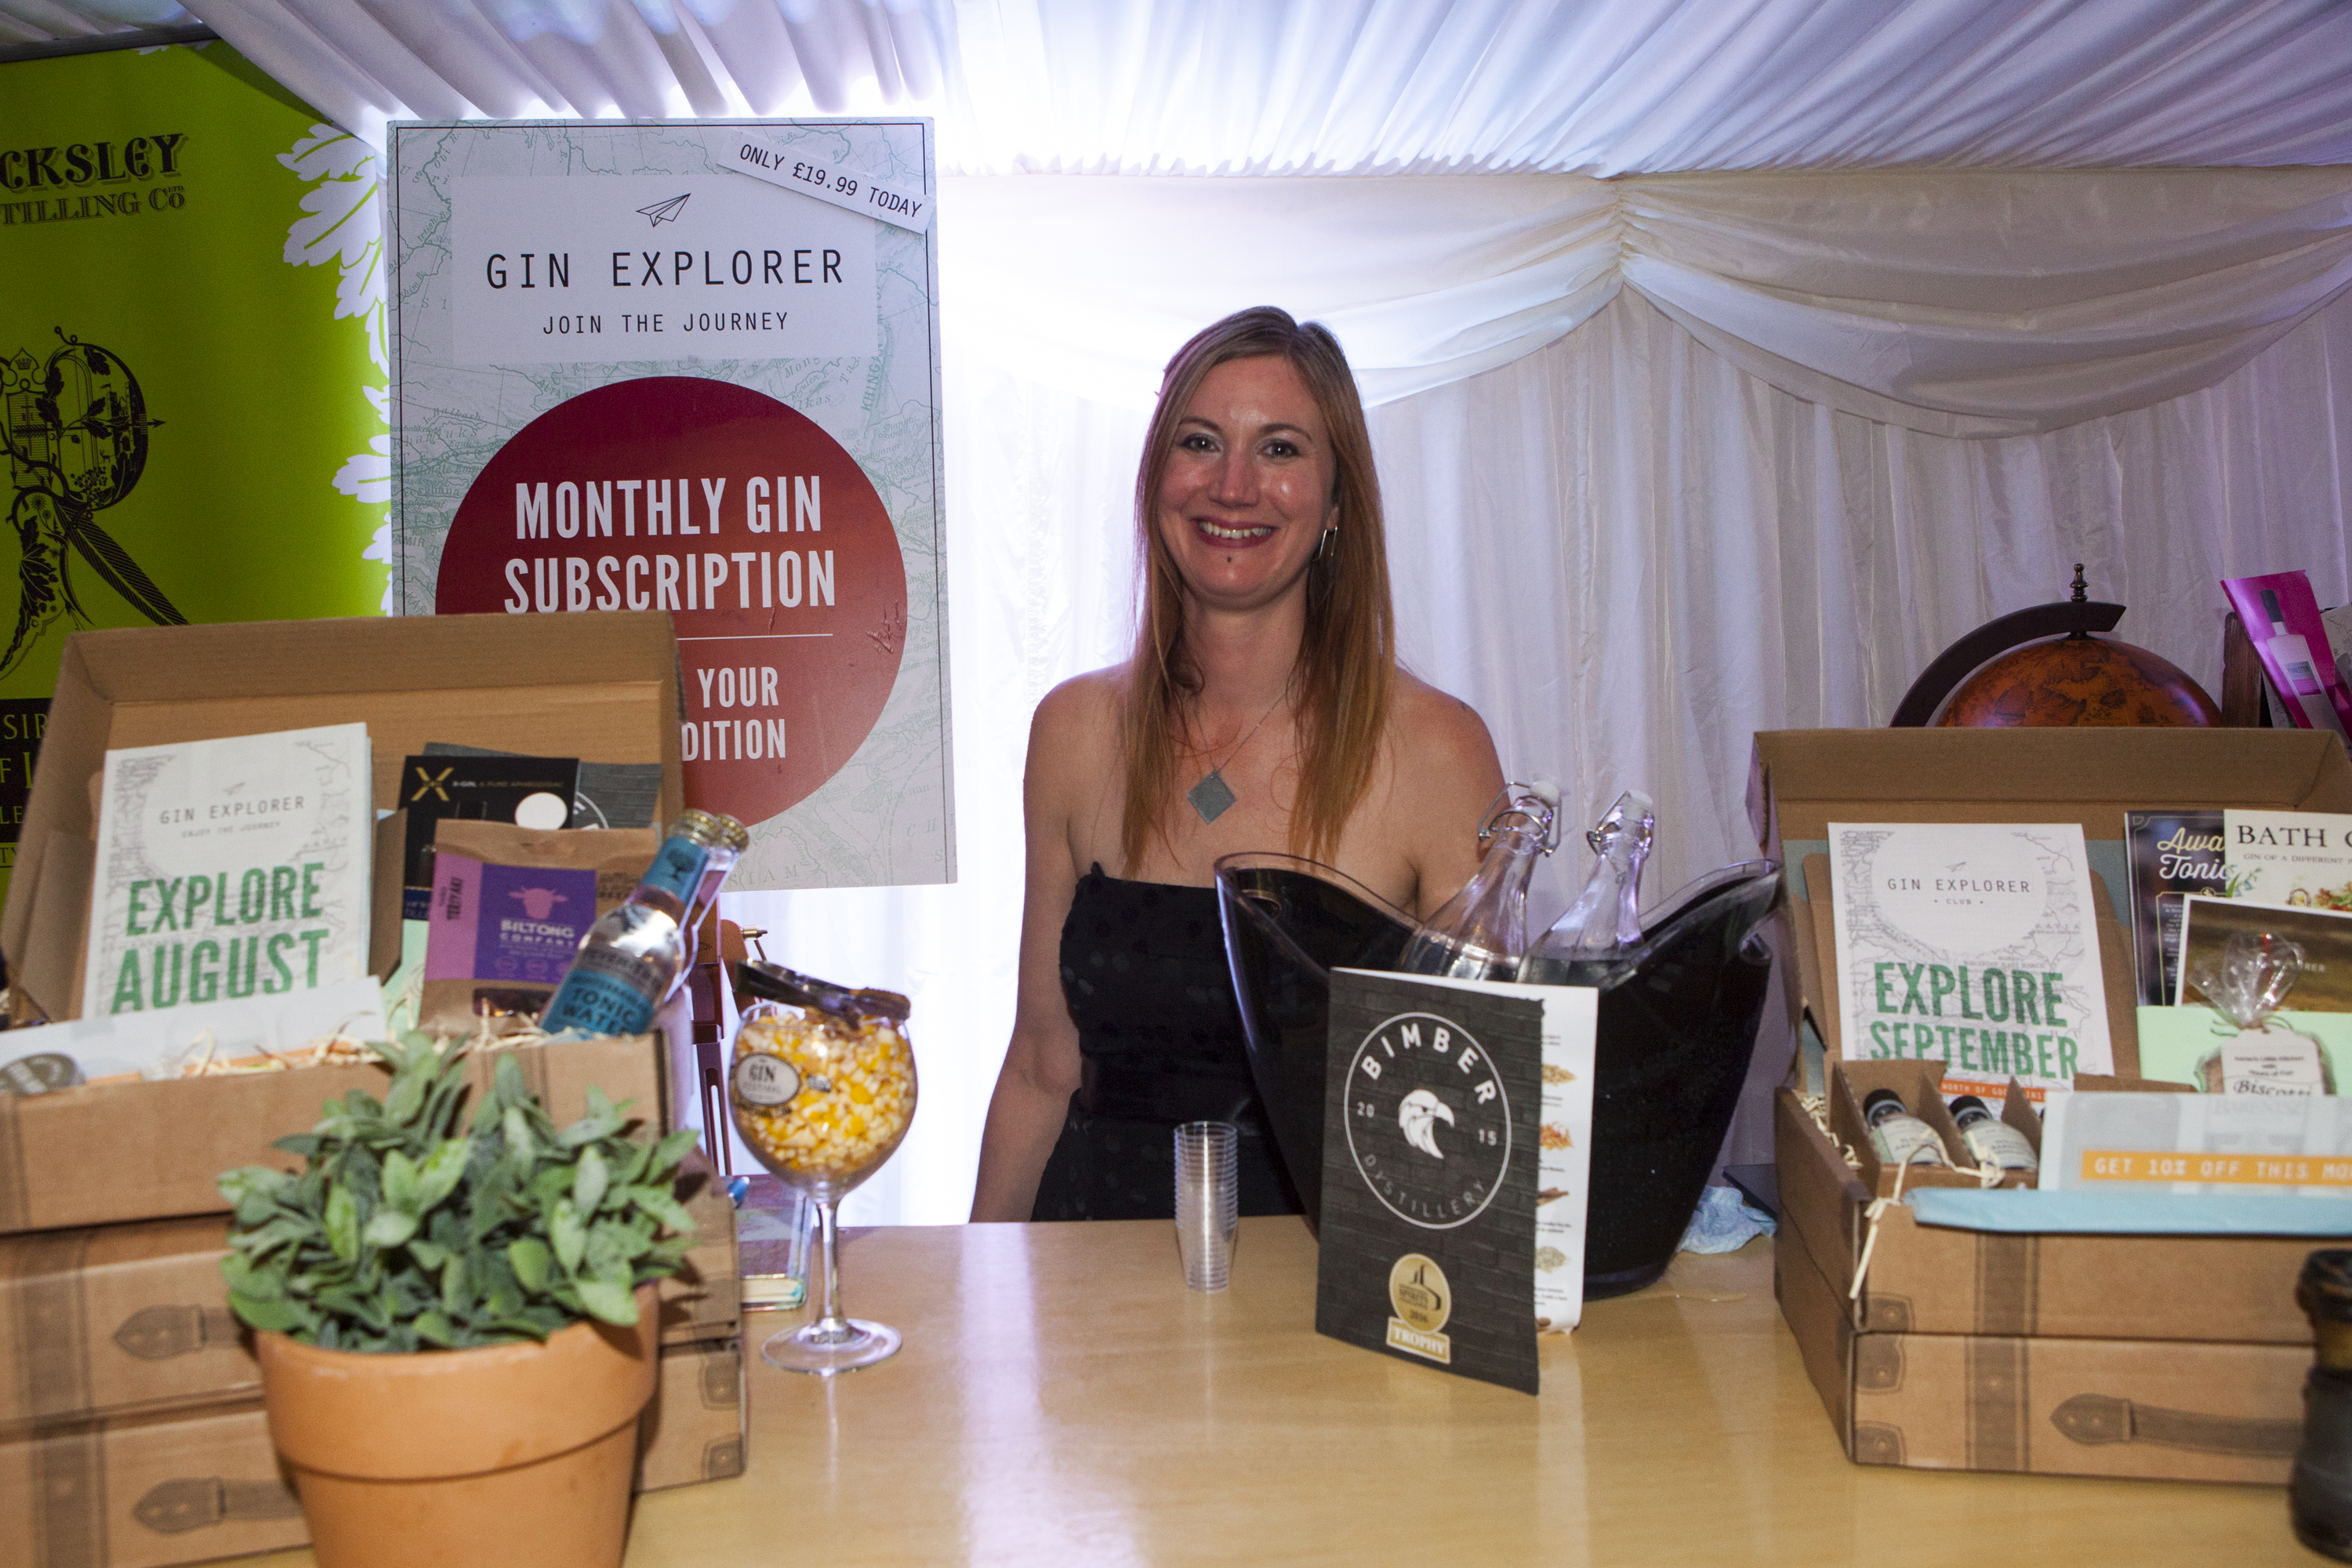 Ginfestival guildford 2016 774